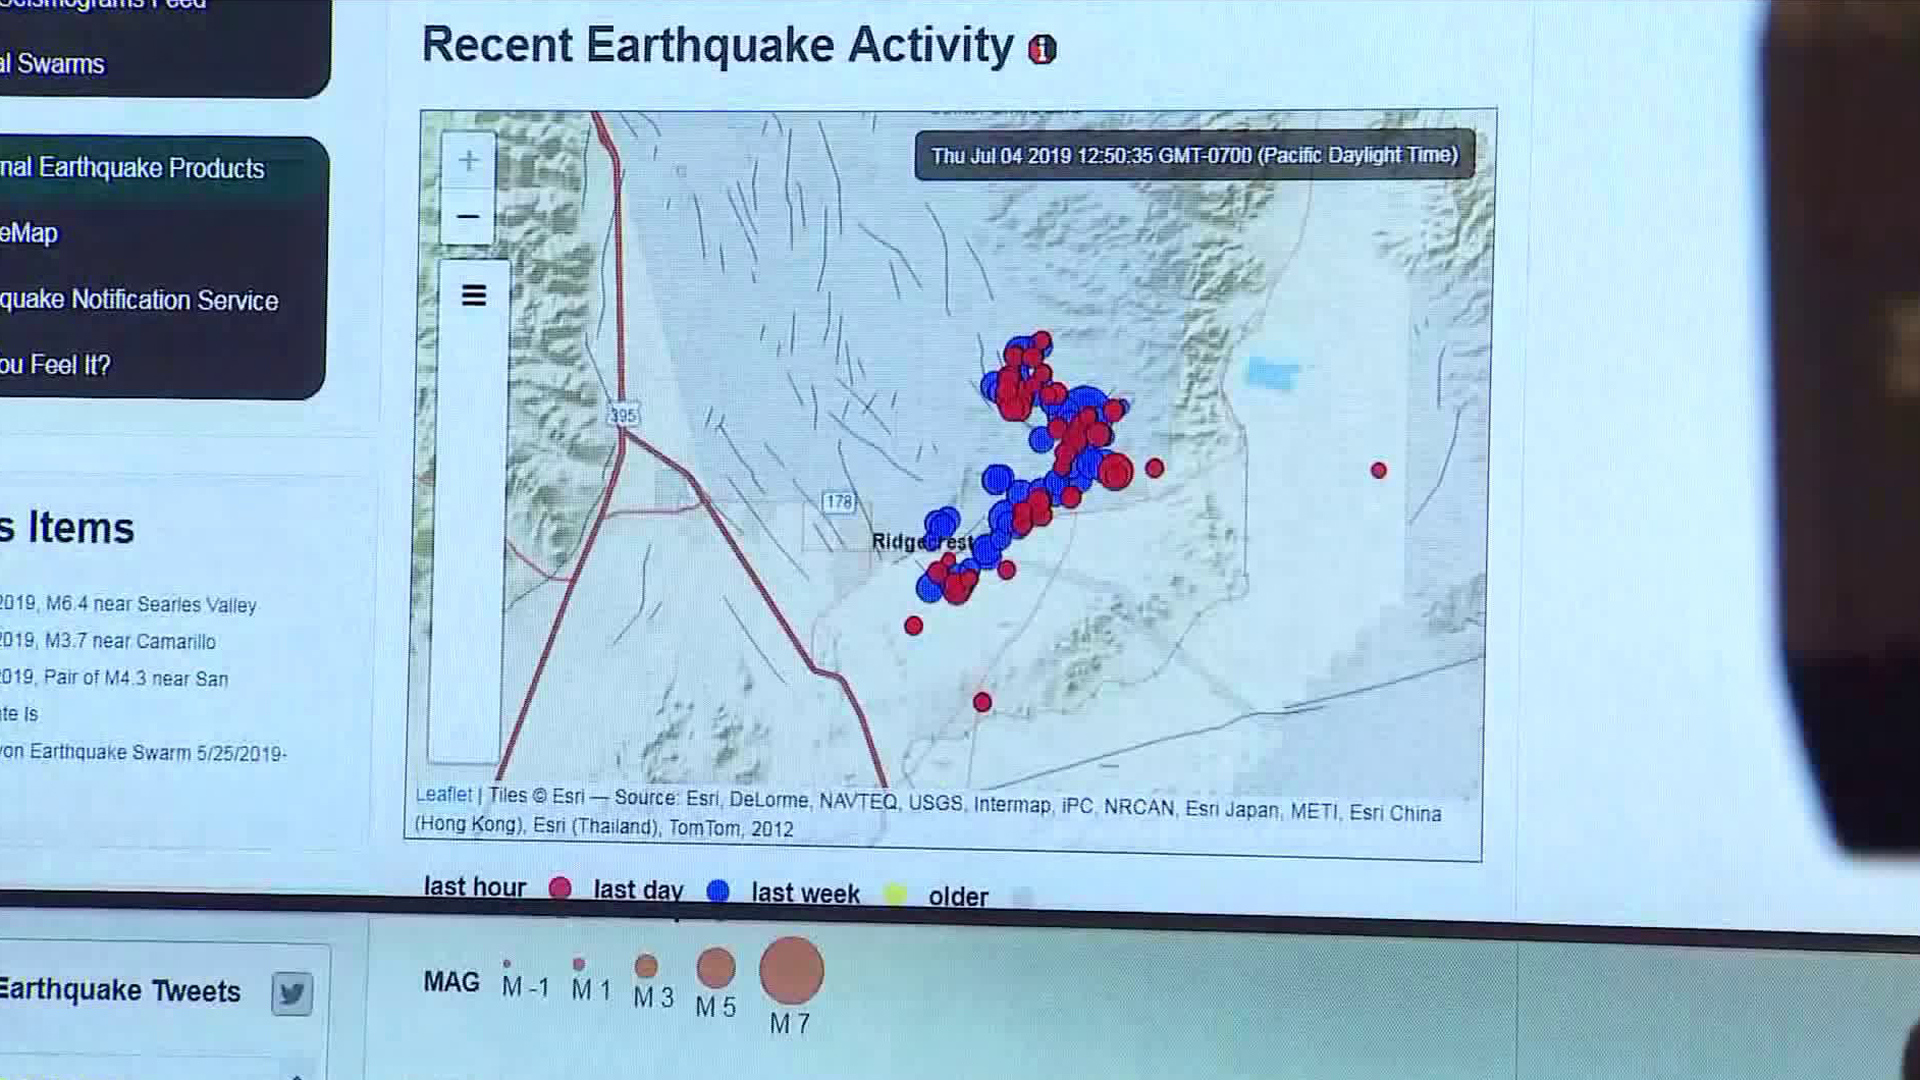 USGS officials hold a news conference about a 6.4 magnitude quake that struck the Mojave Desert on July 4, 2019. (Credit: KTLA)